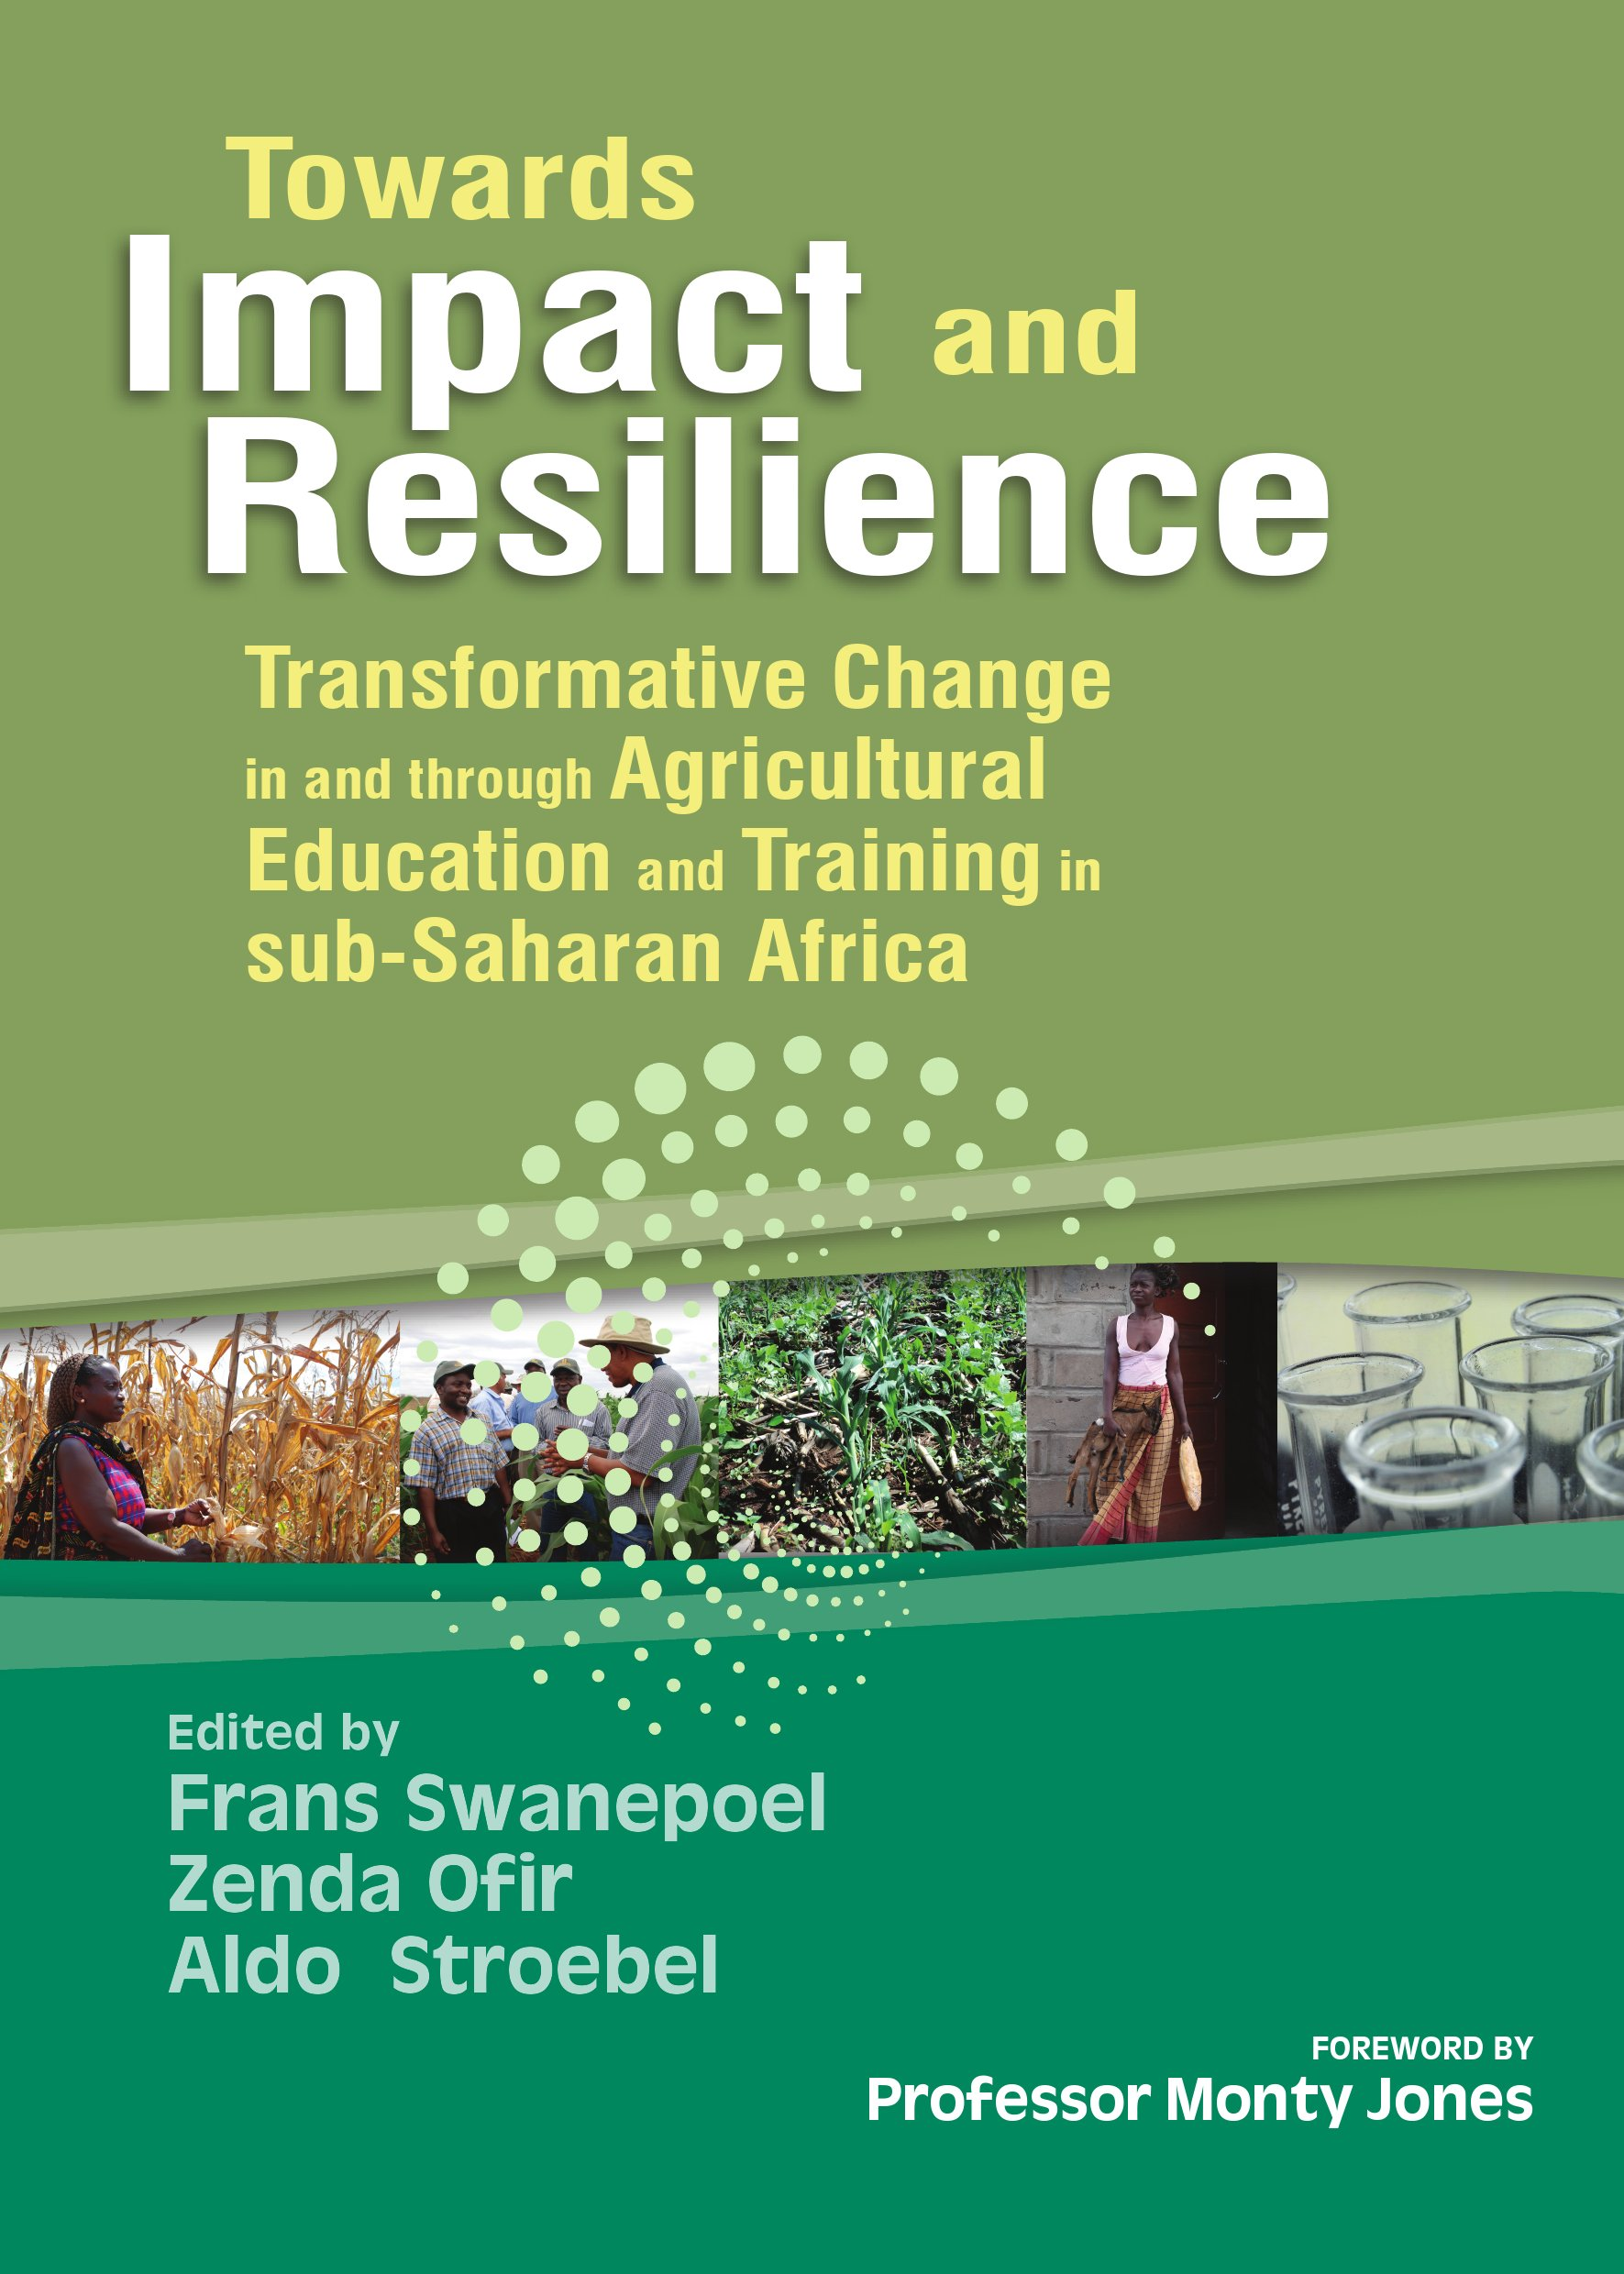 Towards Impact and Resilience: Transformative Change In and Through Agricultural Education and Training in Sub-Saharan Africa